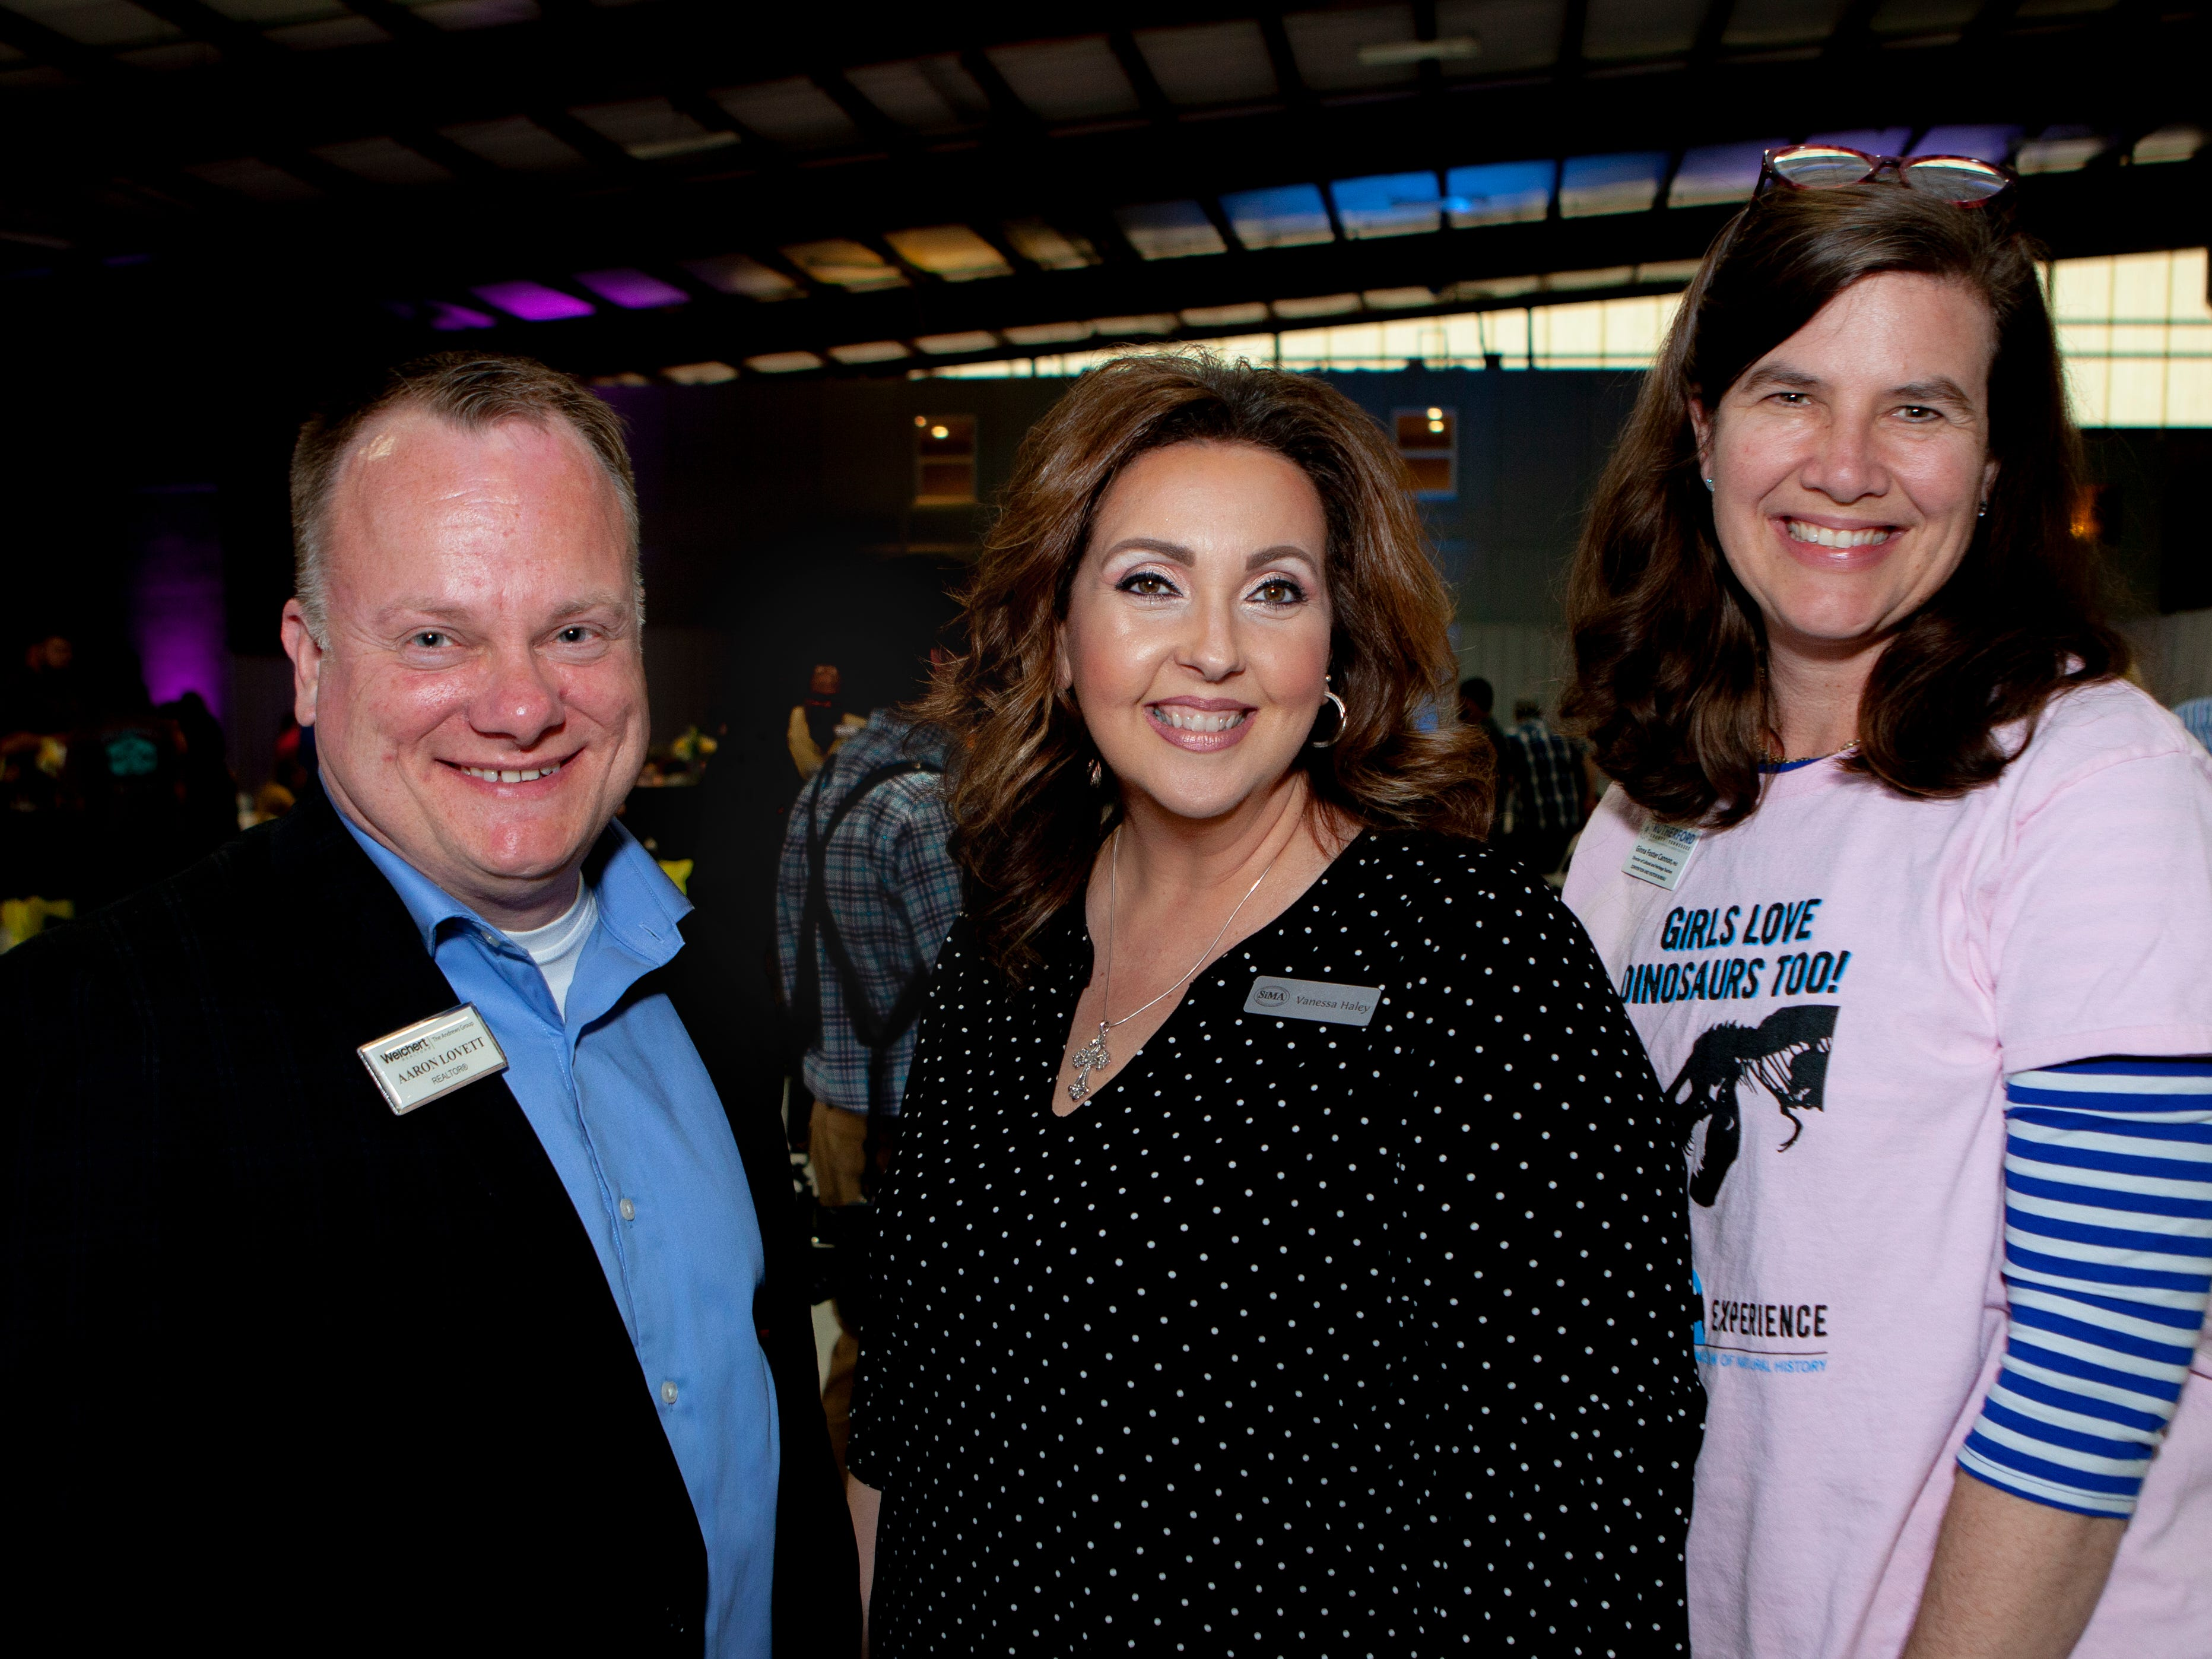 Aaron Lovett, Vanessa Haley and Gina Foster Cannon at the Light Up Local Firefly Awards, hosted by Locally Owned Murfreesboro and Smyrna Independent Merchants Association. Awards were presented Tuesday, April 23, 2019 at Hollingshead Aviation at Smyrna Airport.